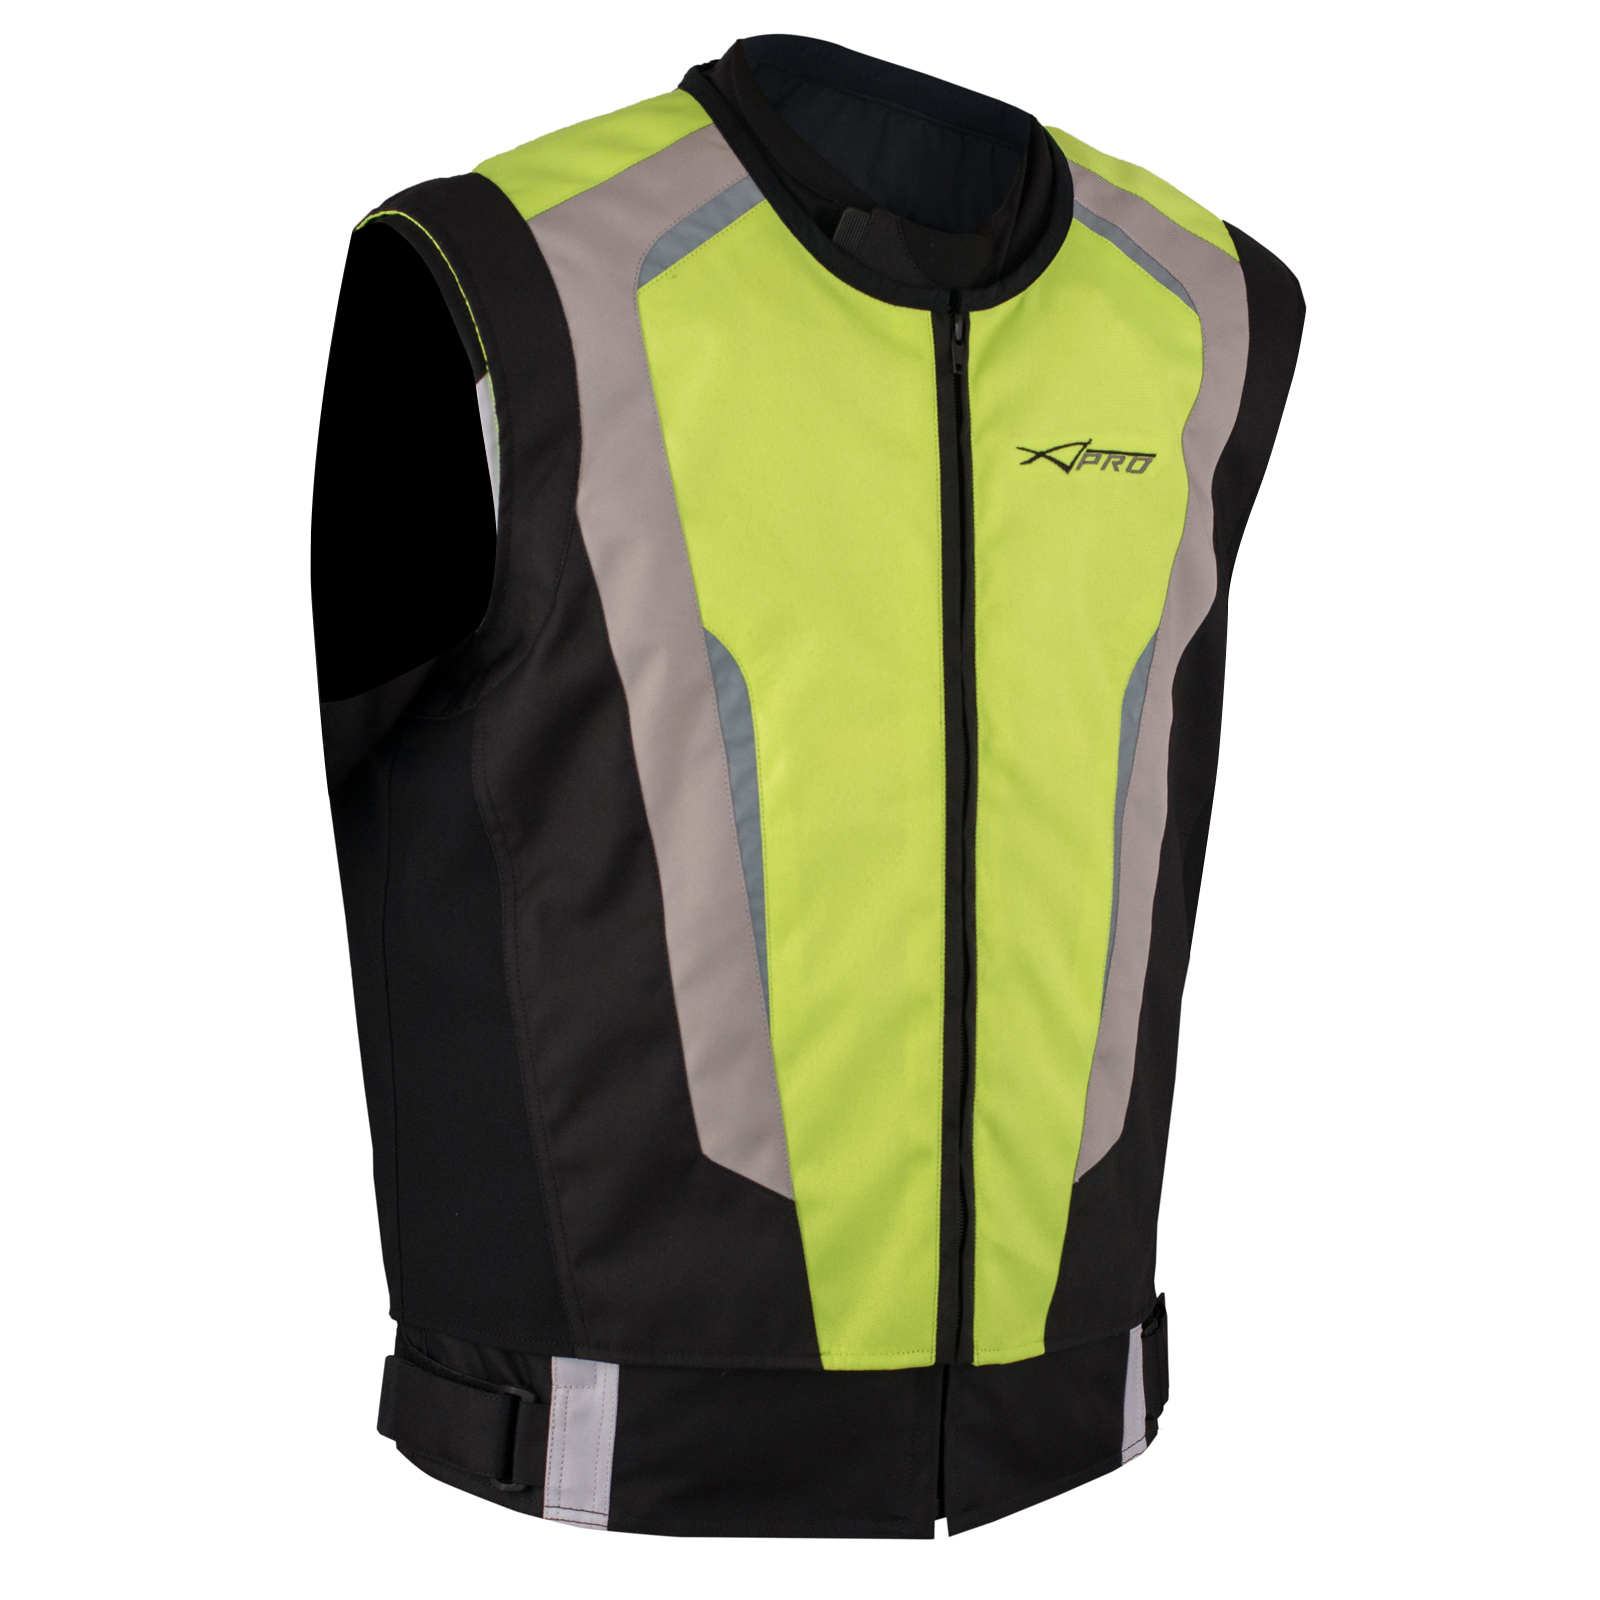 gilet securit moto v lo haute visibilit s curt vest auto fluo m ebay. Black Bedroom Furniture Sets. Home Design Ideas